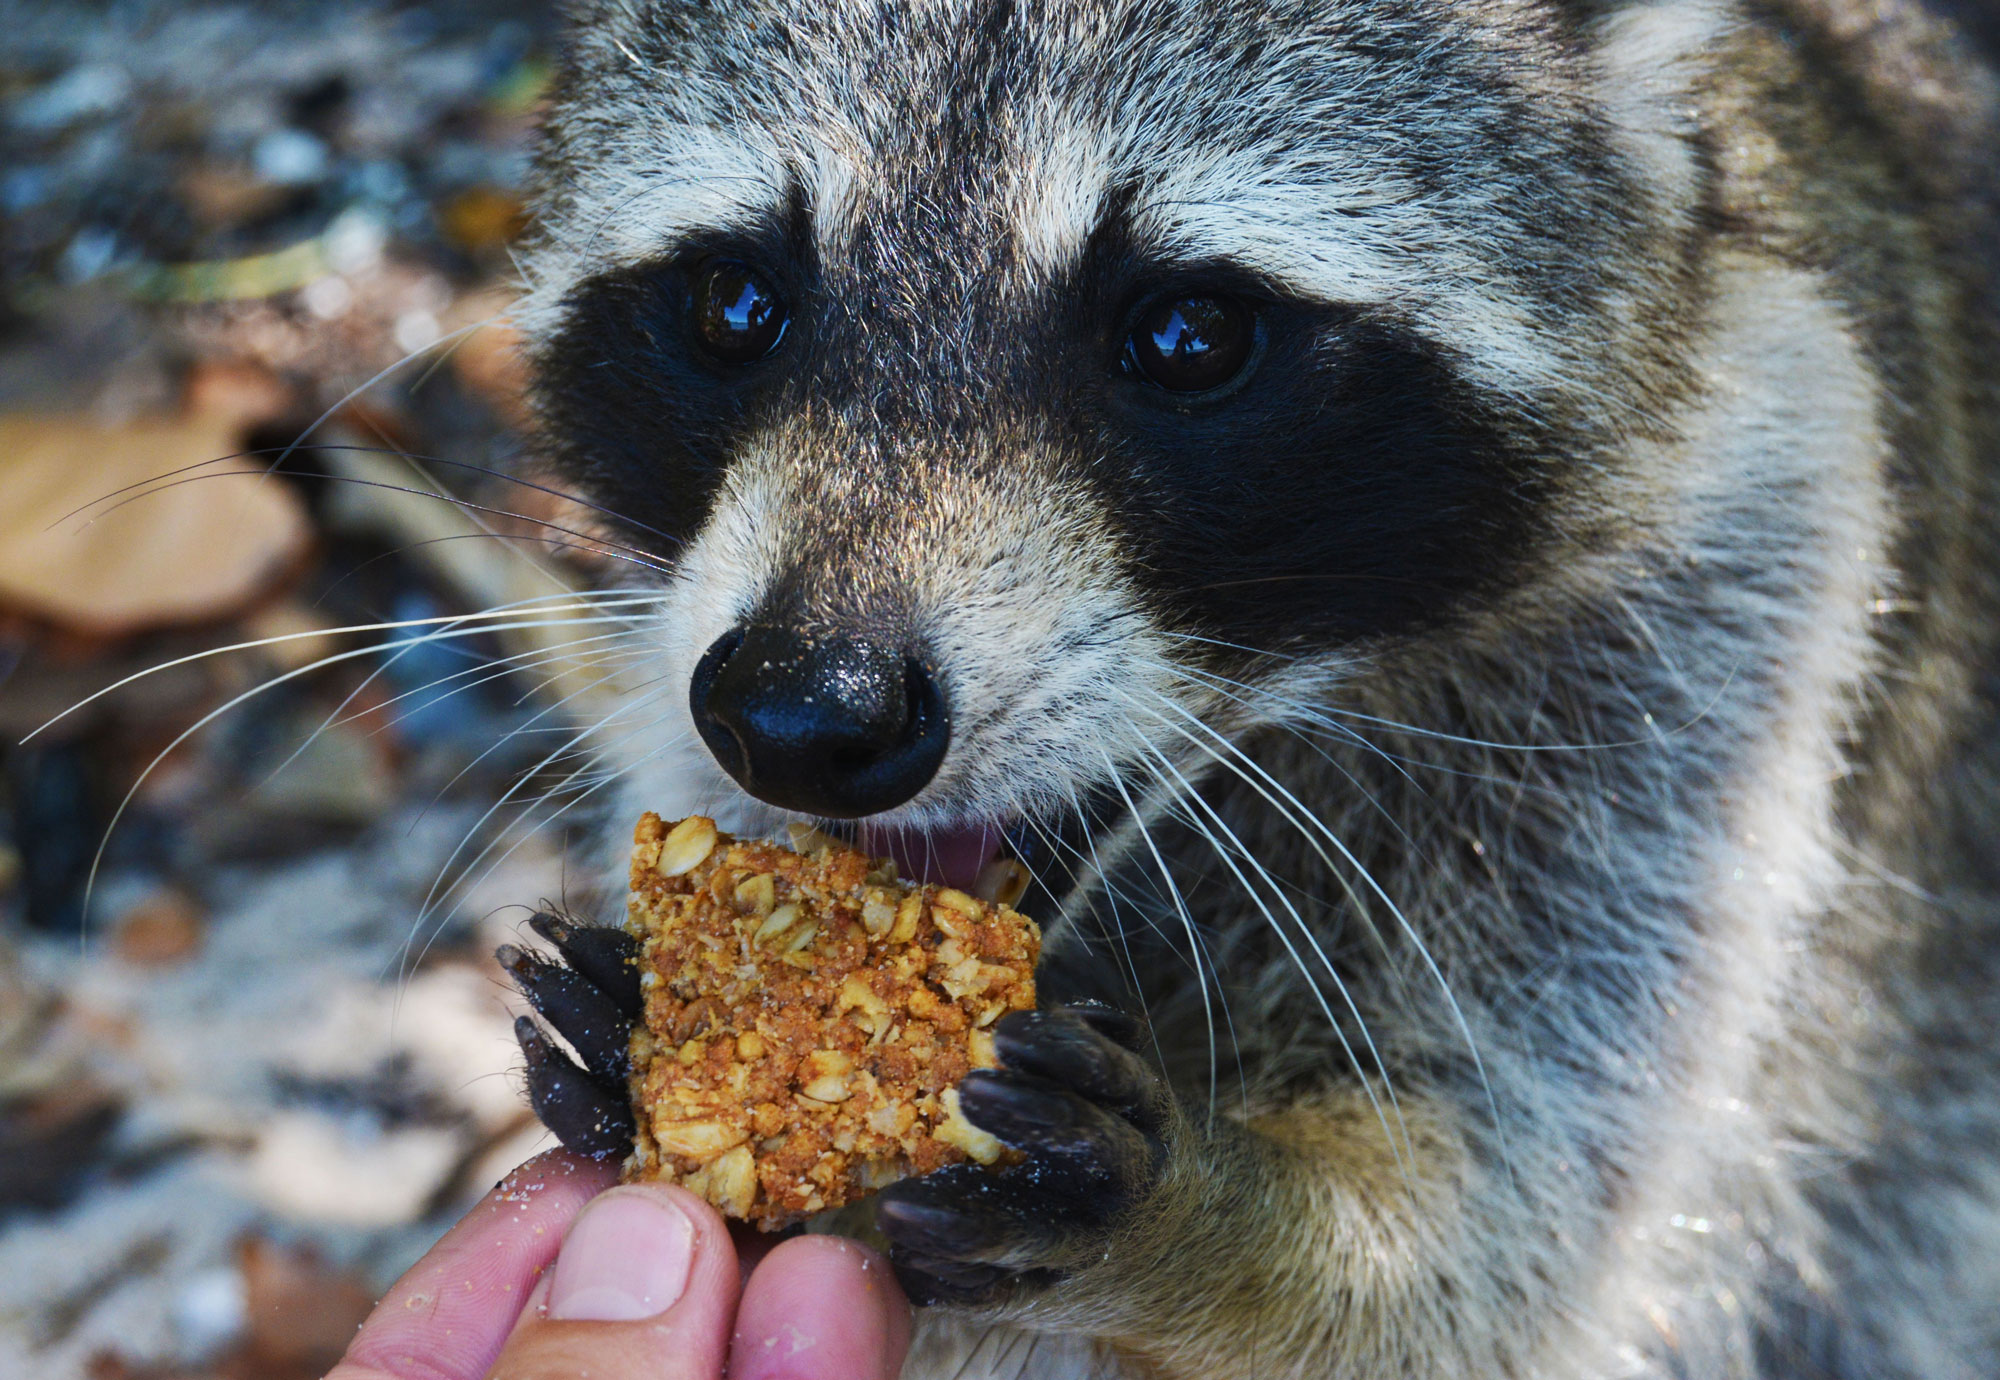 Photo for: Forest Preserve Formalizes Ban on Feeding Wildlife